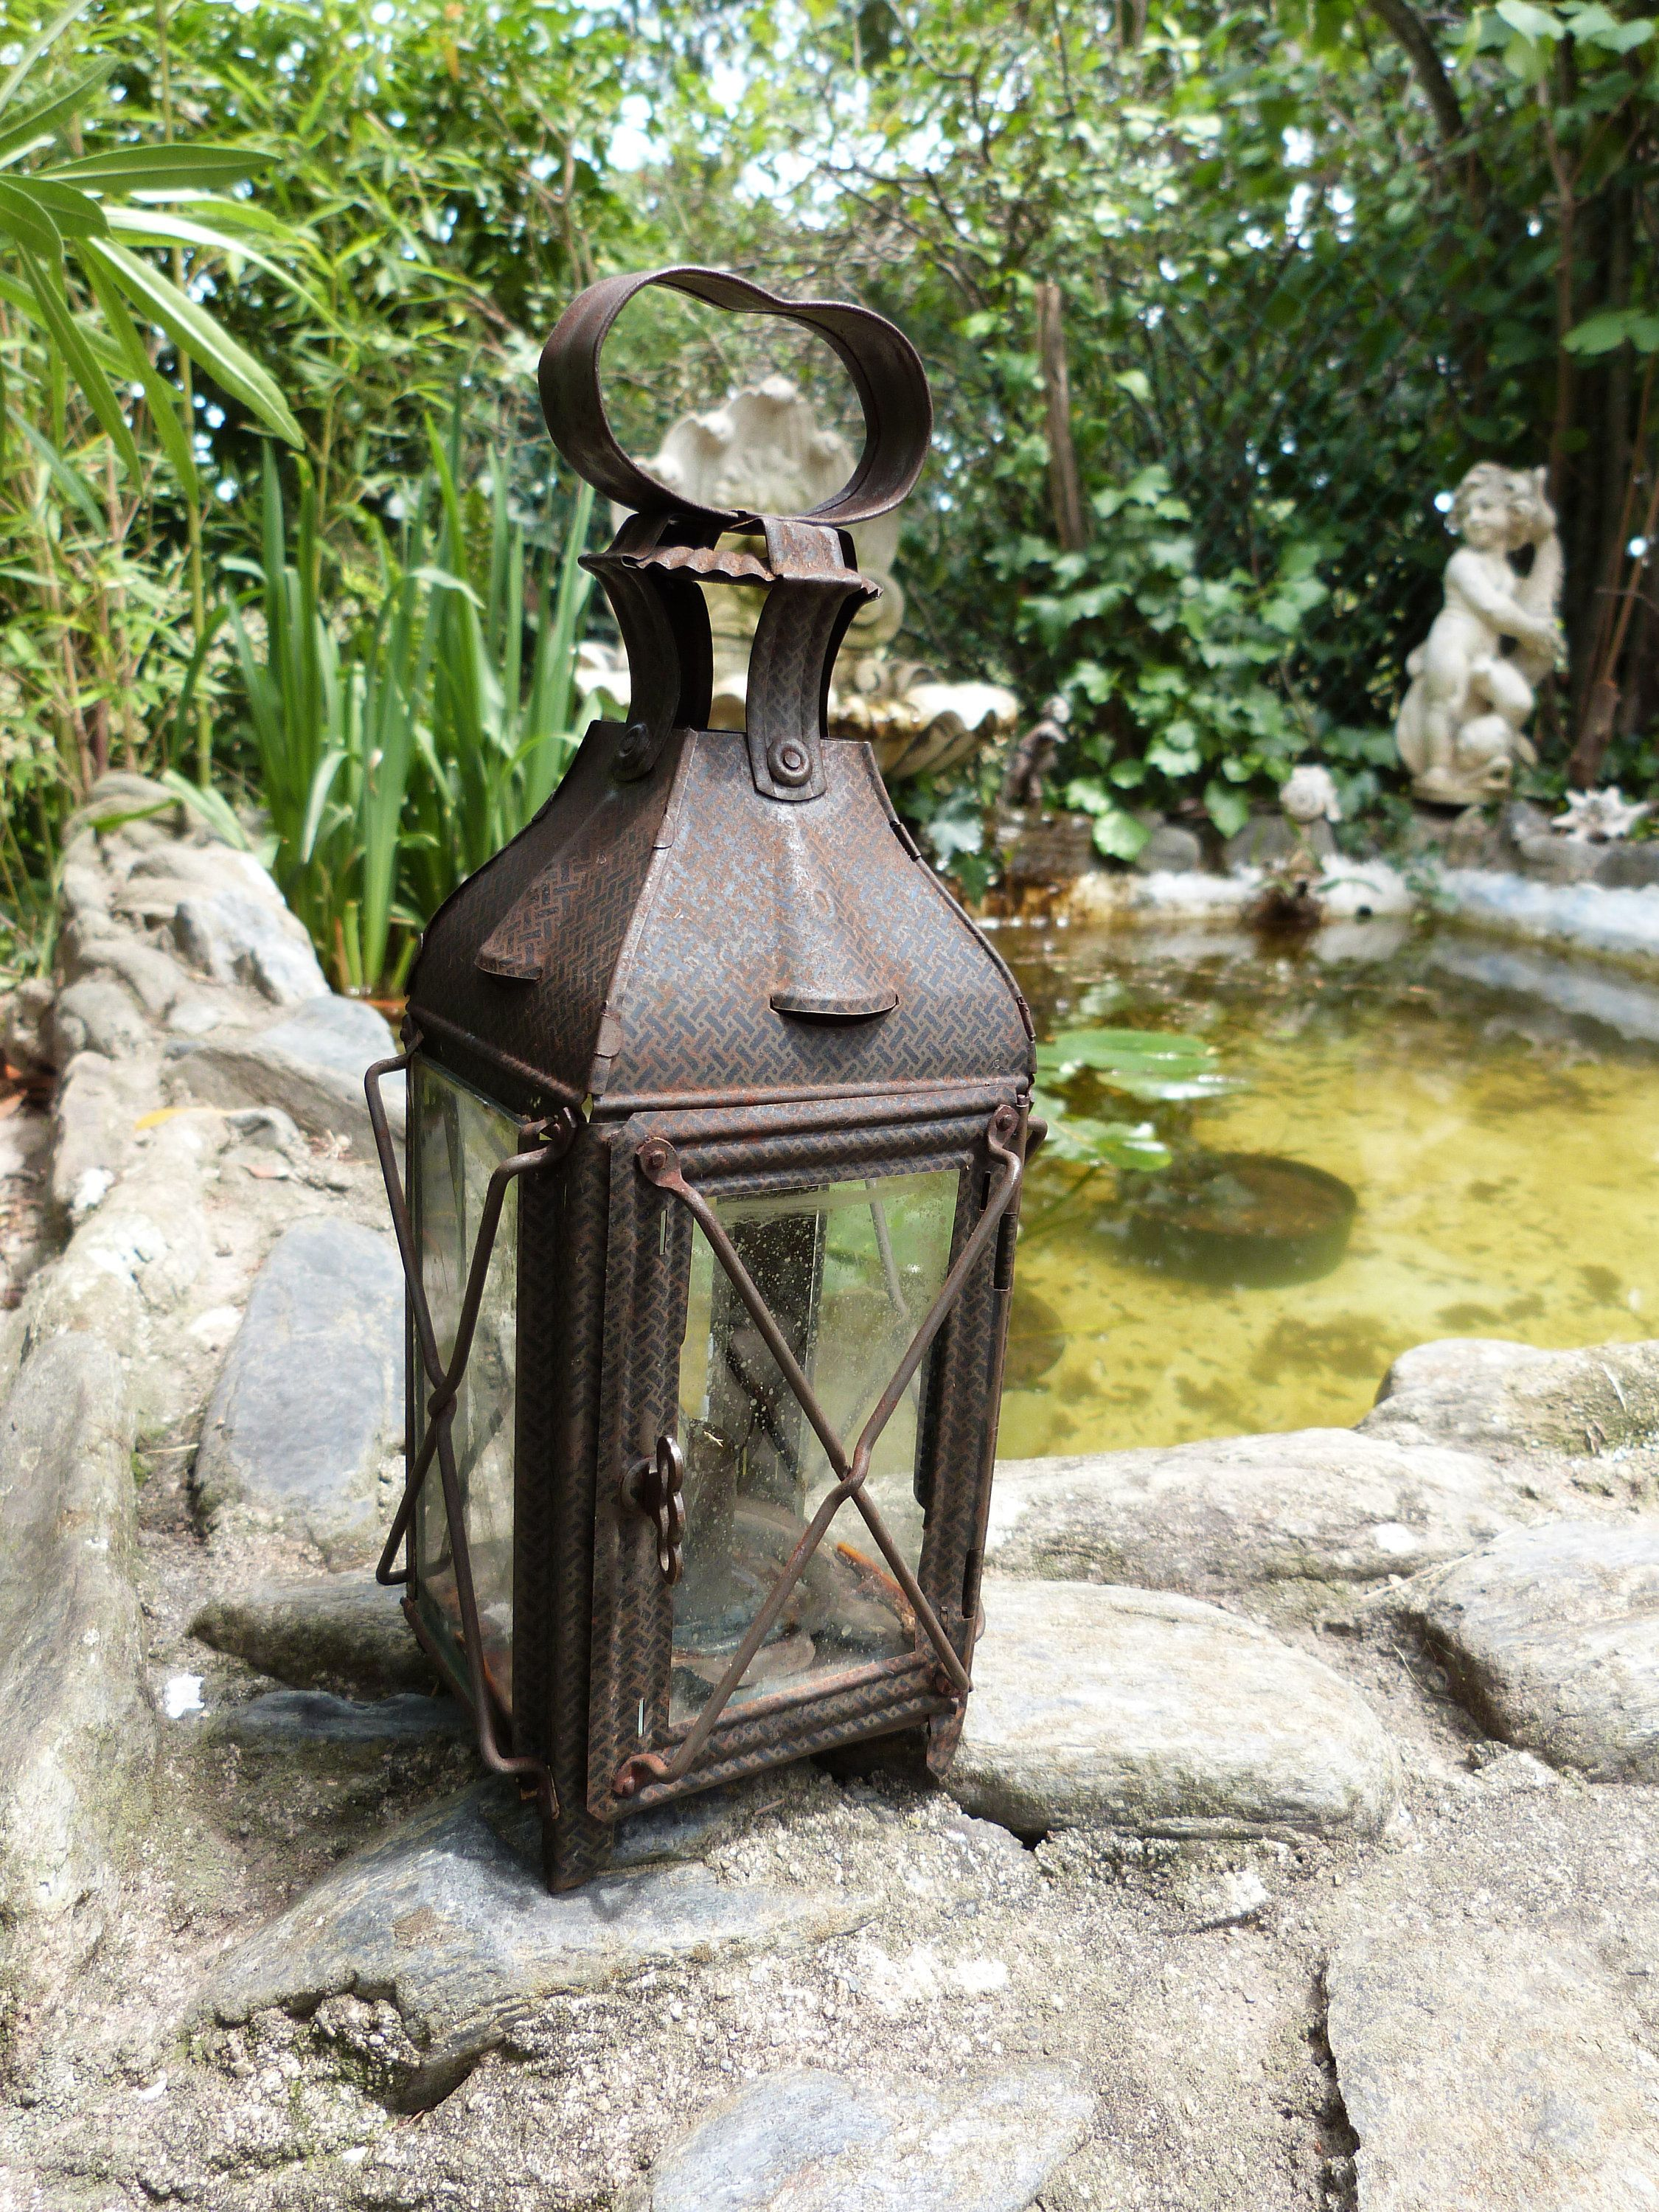 Antique French Primitive Hanging Candle Lantern Holder 1900s Etsy Outdoor Candle Lanterns Hanging Candle Lanterns Candle Lanterns